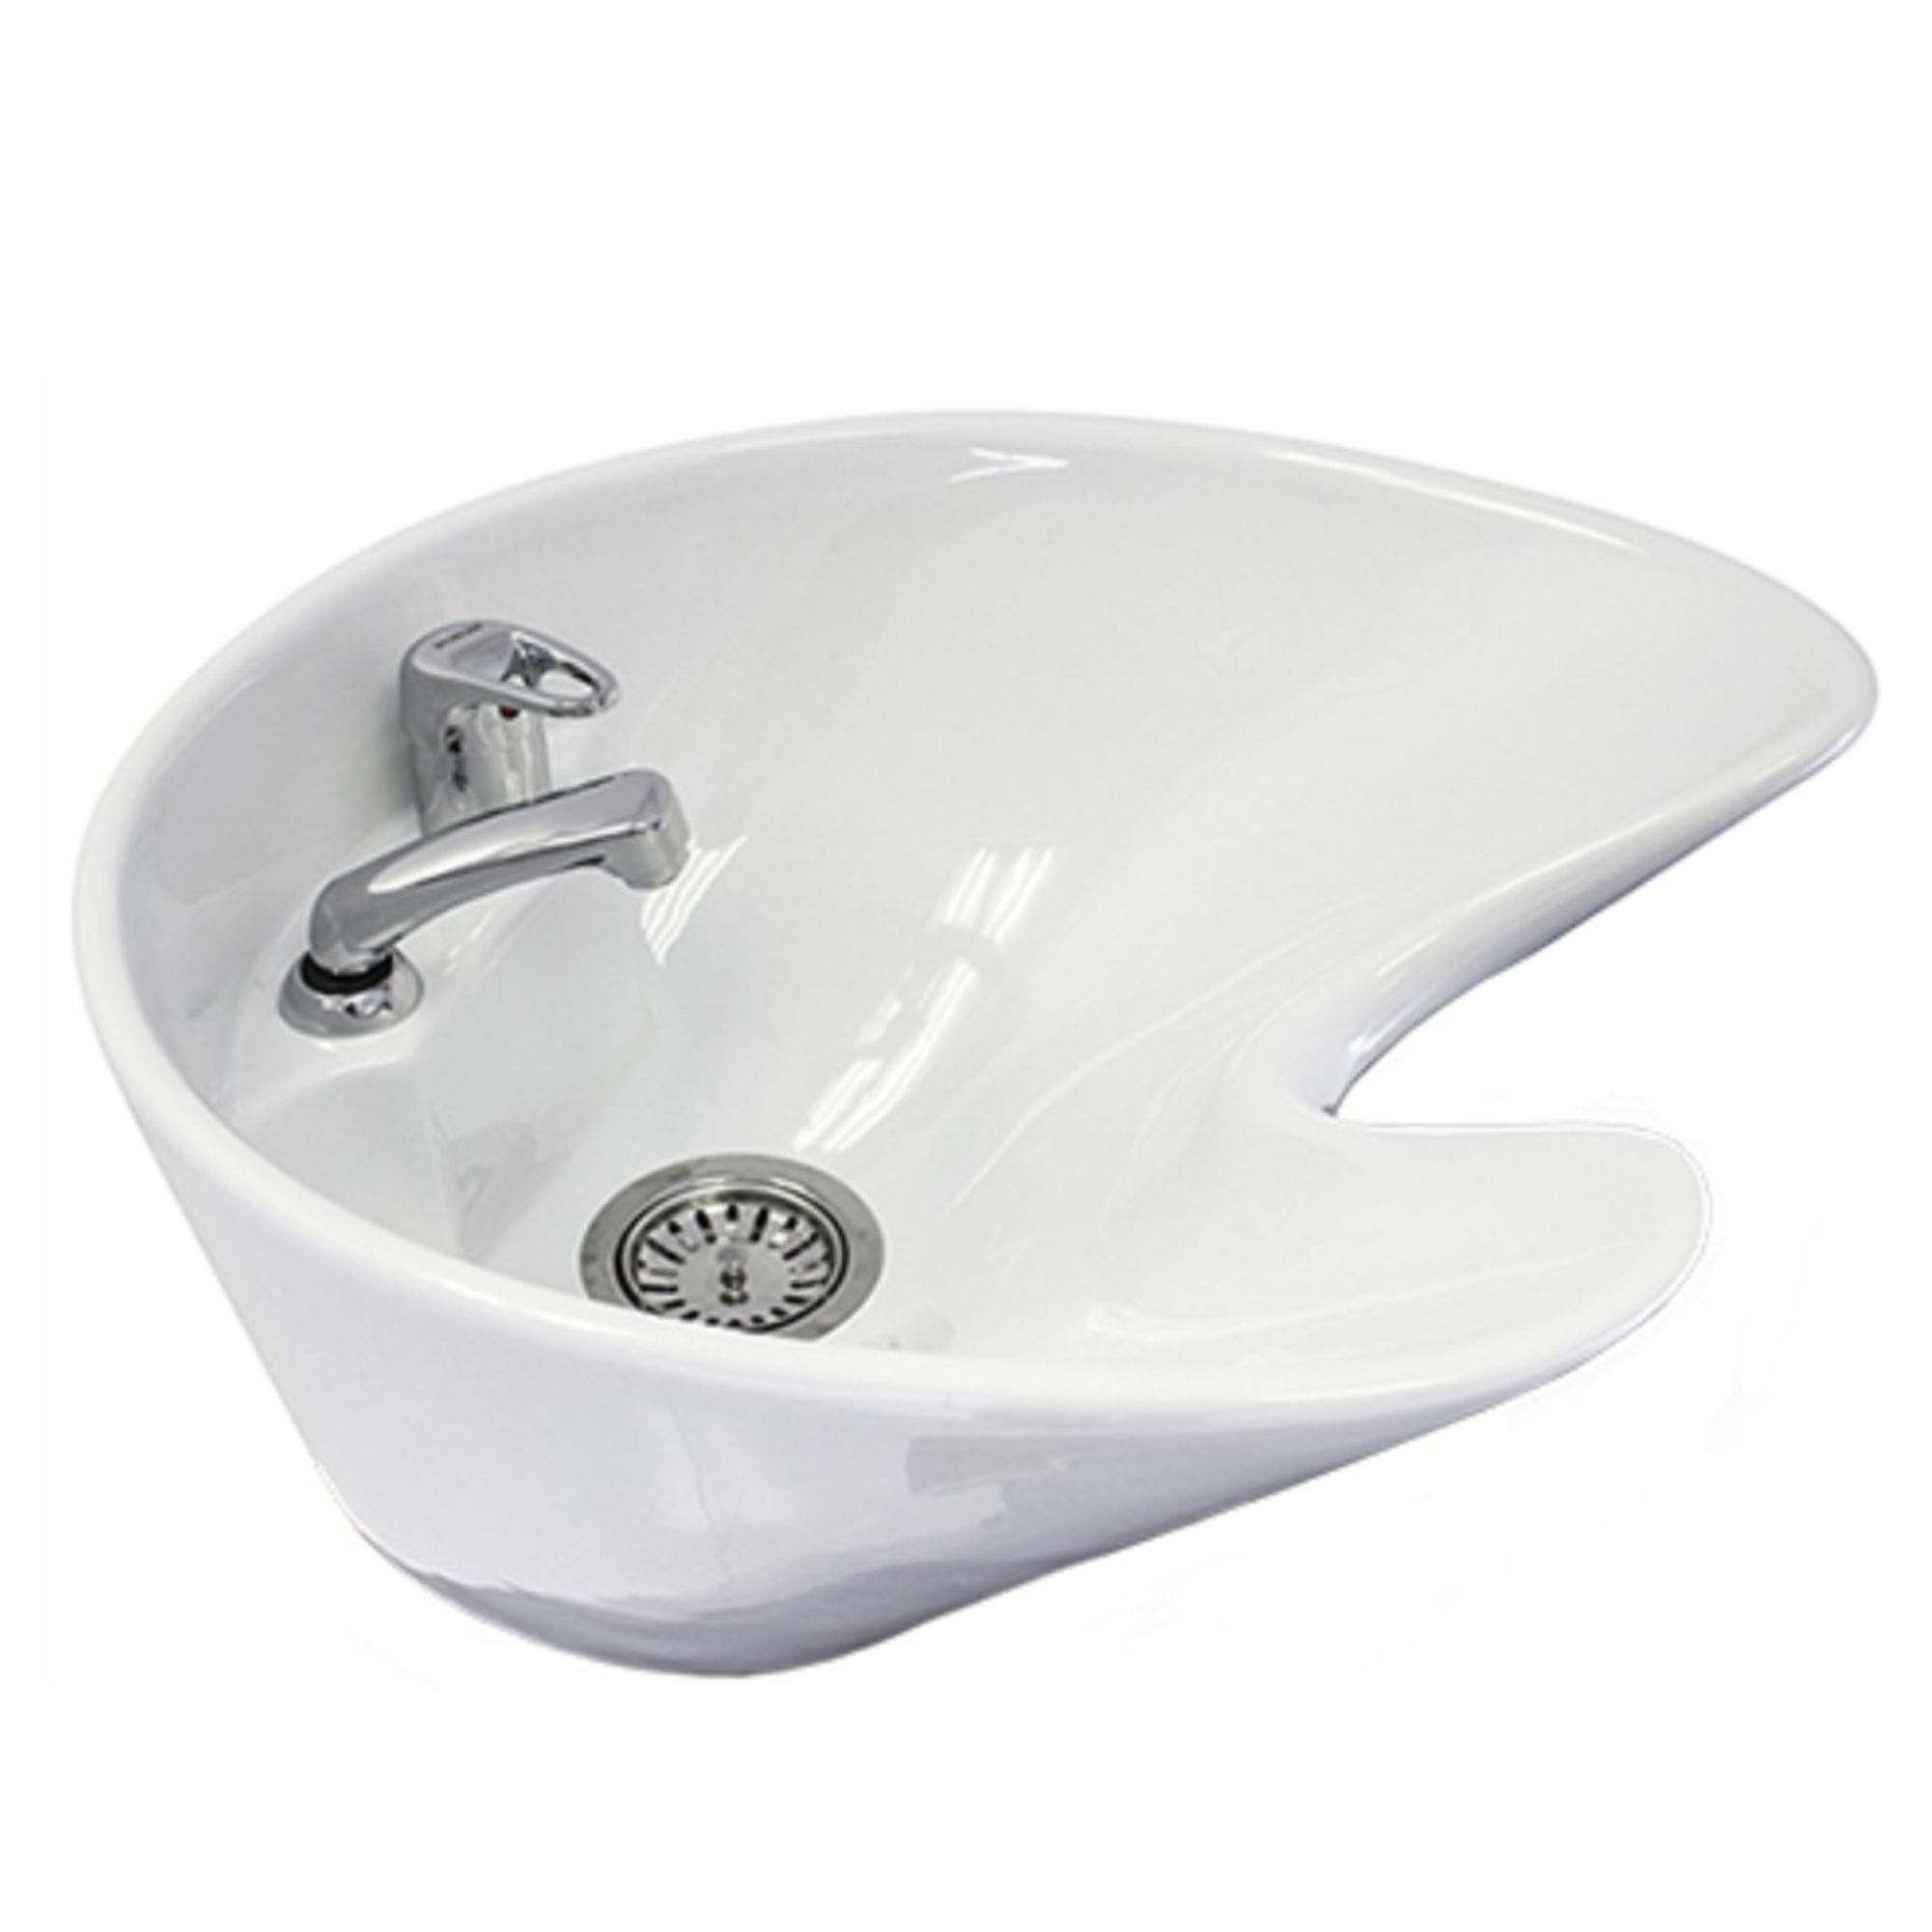 REM Kiko Backwash Basin With Tilt